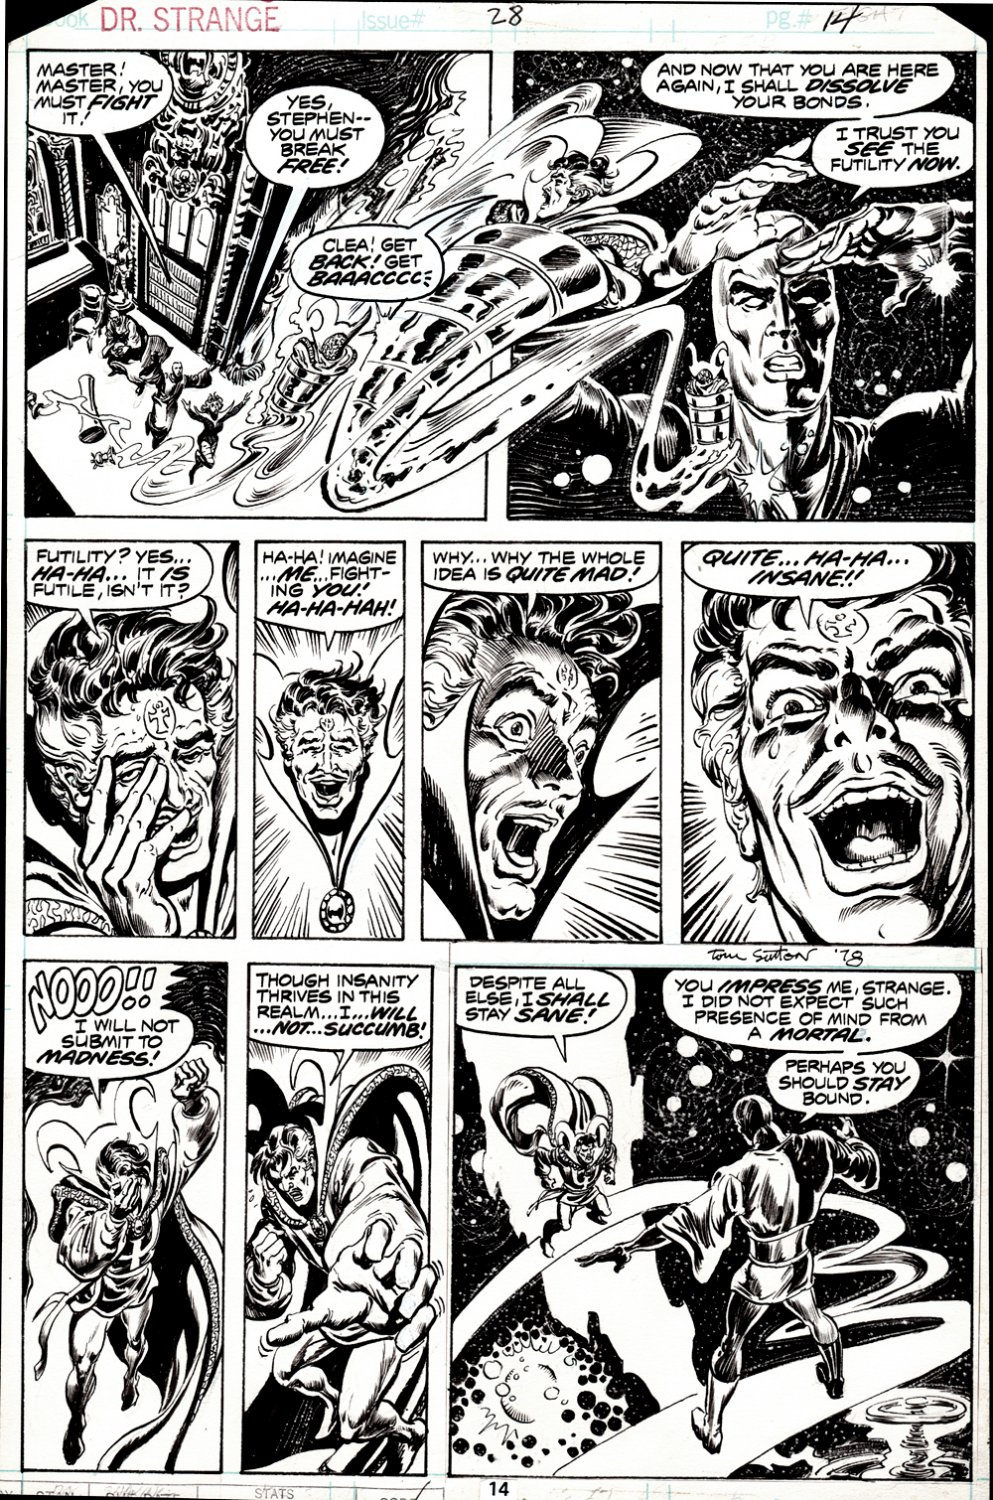 Doctor Strange #28 p 14 (DR. STRANGE BATTLES THE IN-BETWEENER IN EVERY PANEL!) 1977